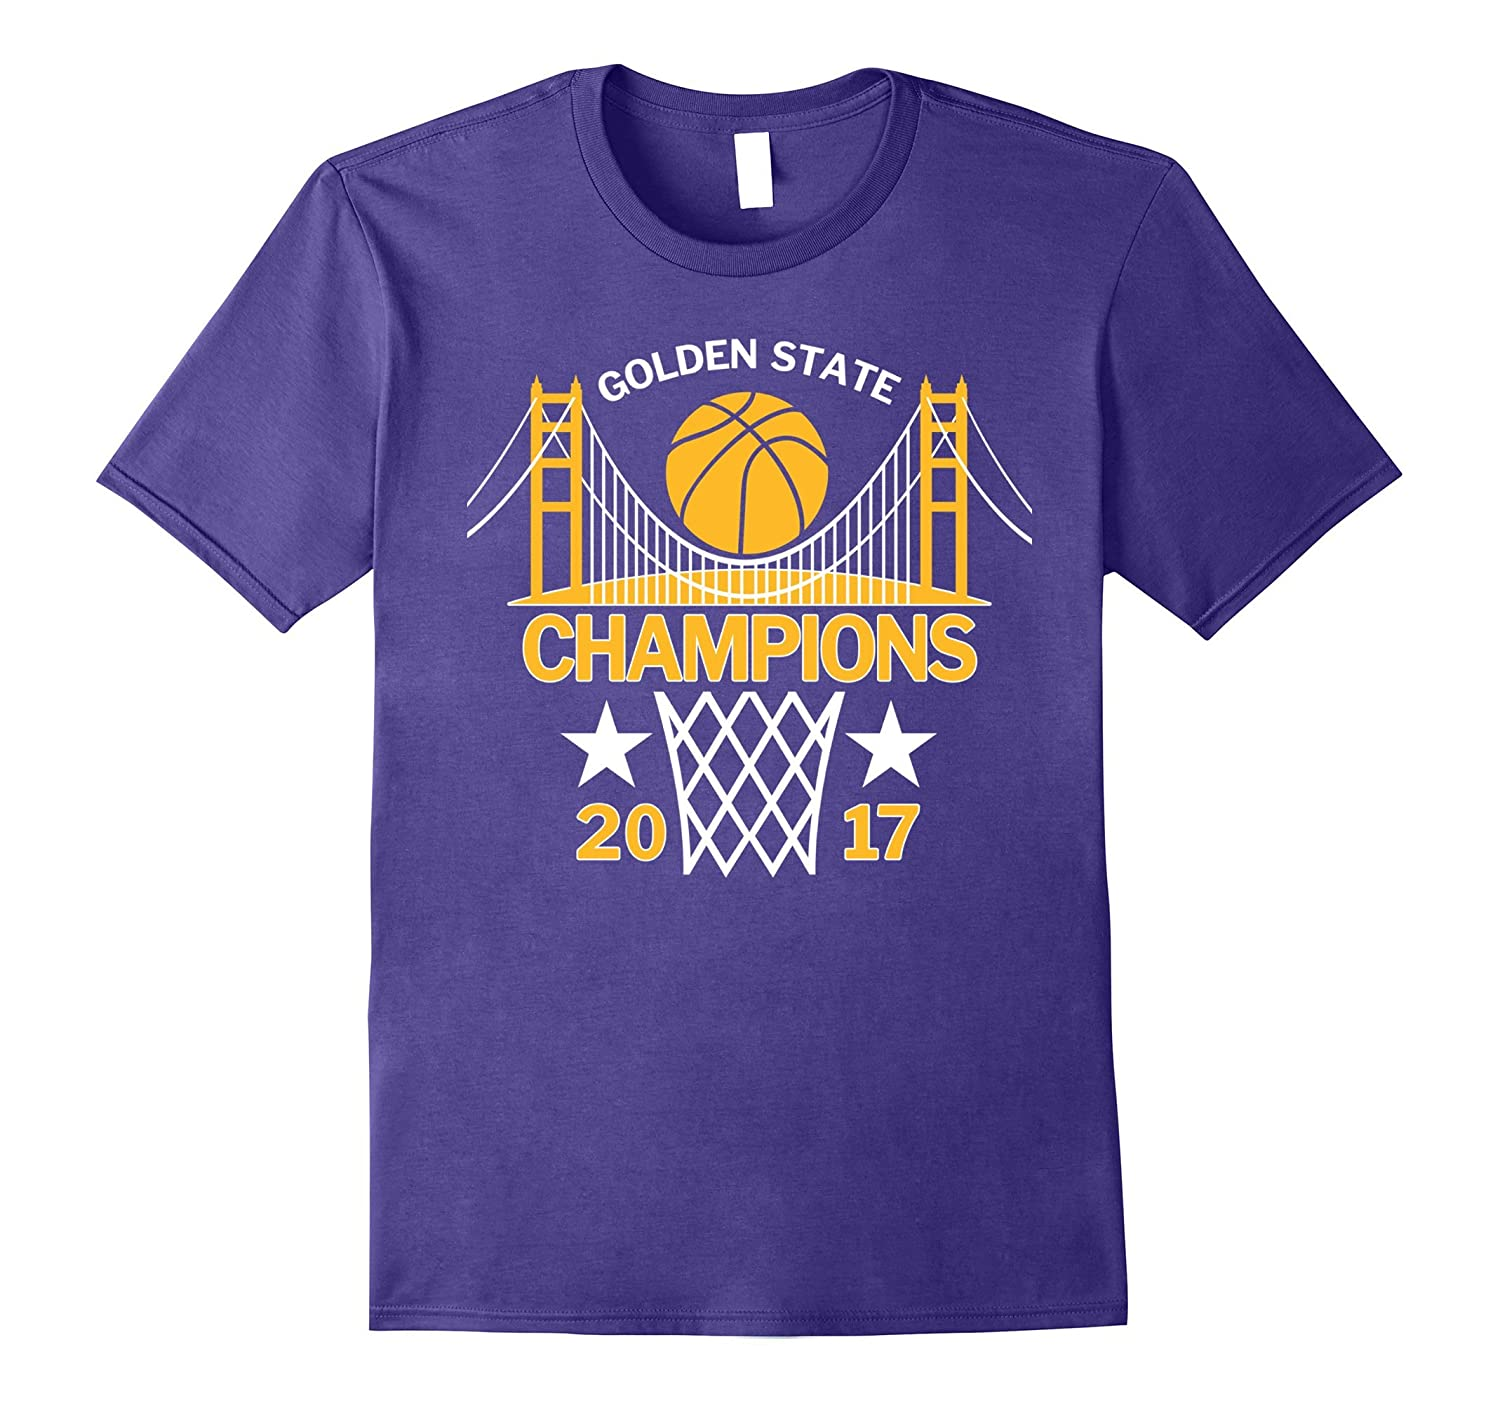 Golden State Champions with Golden Gate Bridge 2017 T-Shirt-BN